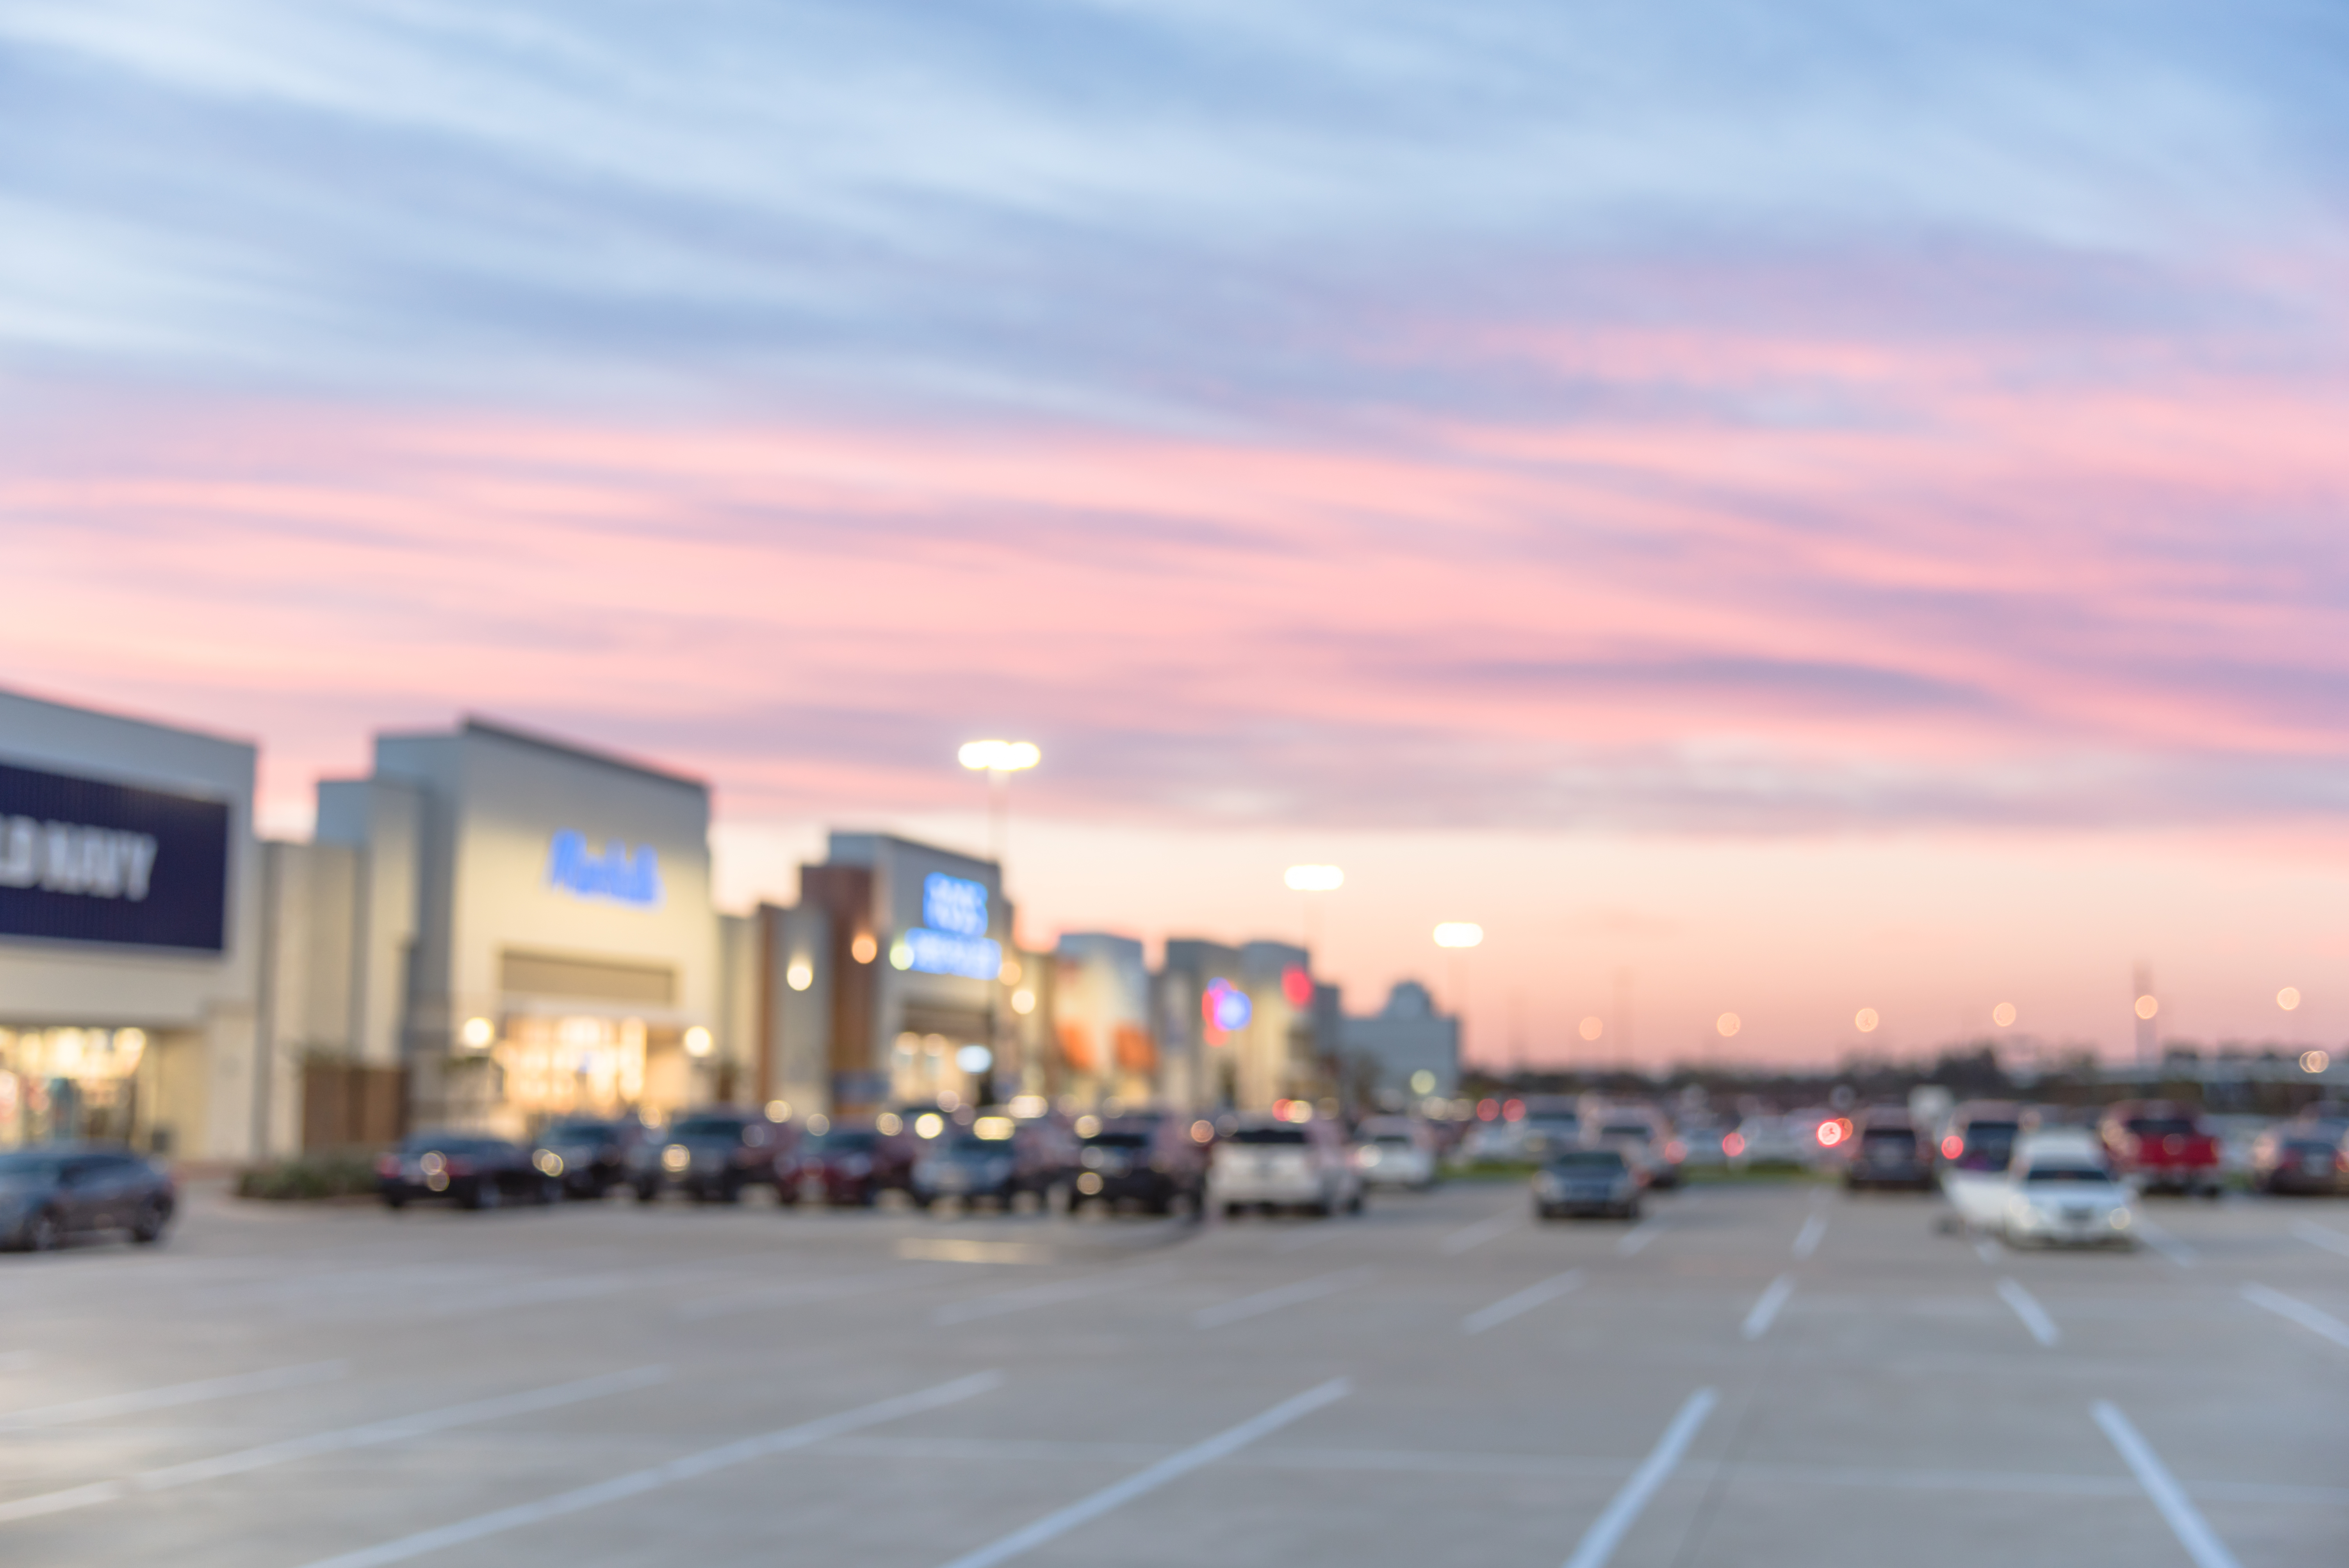 Retail - Out of Town Retail Parks - shutterstock_525342379.jpg